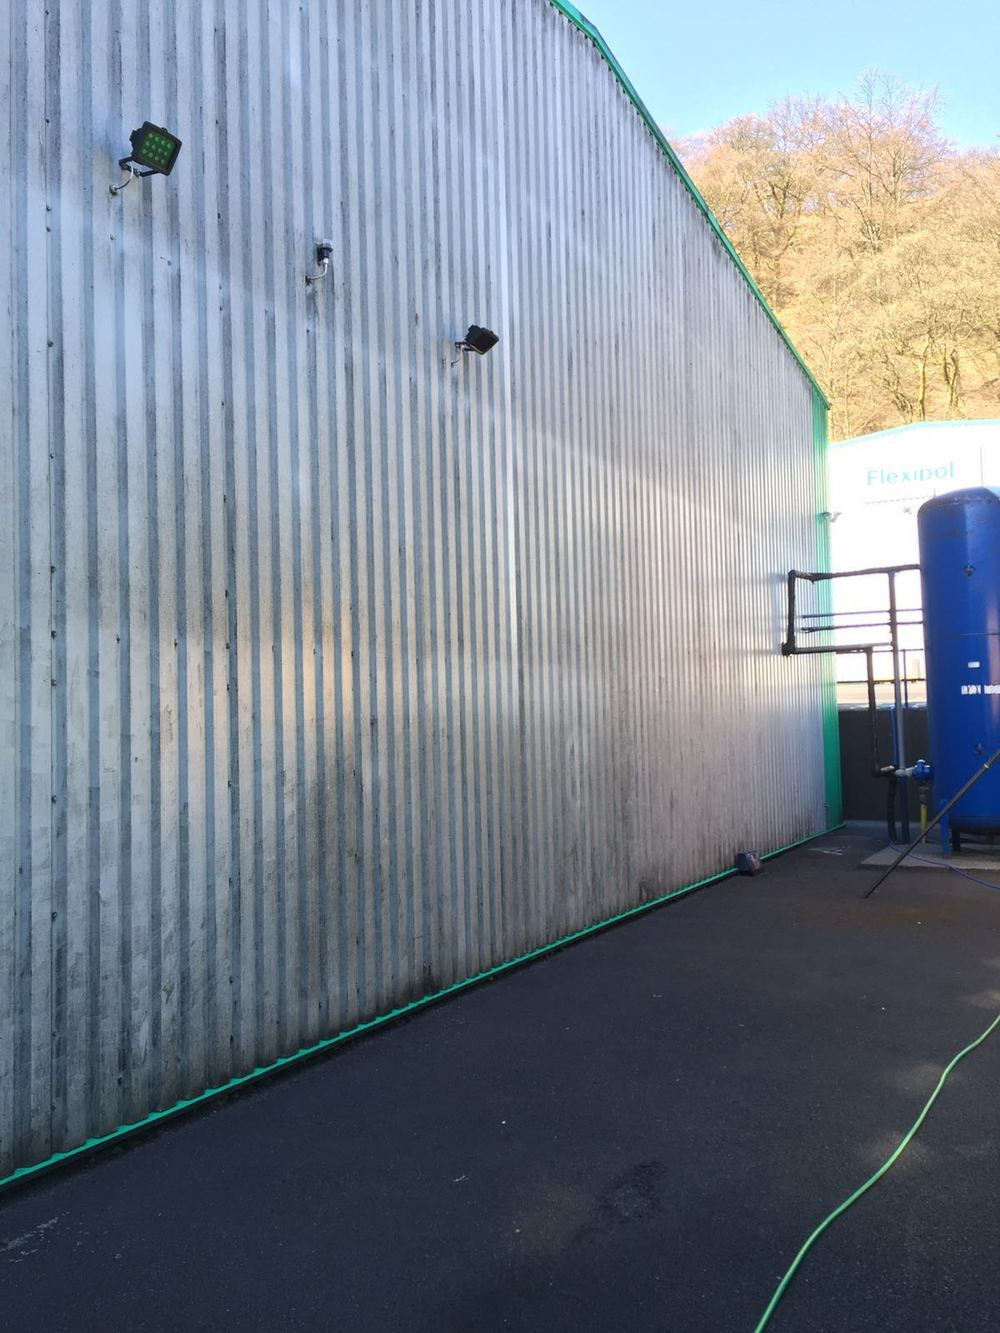 Commercial cladding Softwash treatment at a company in Helmshore, Lancashire.